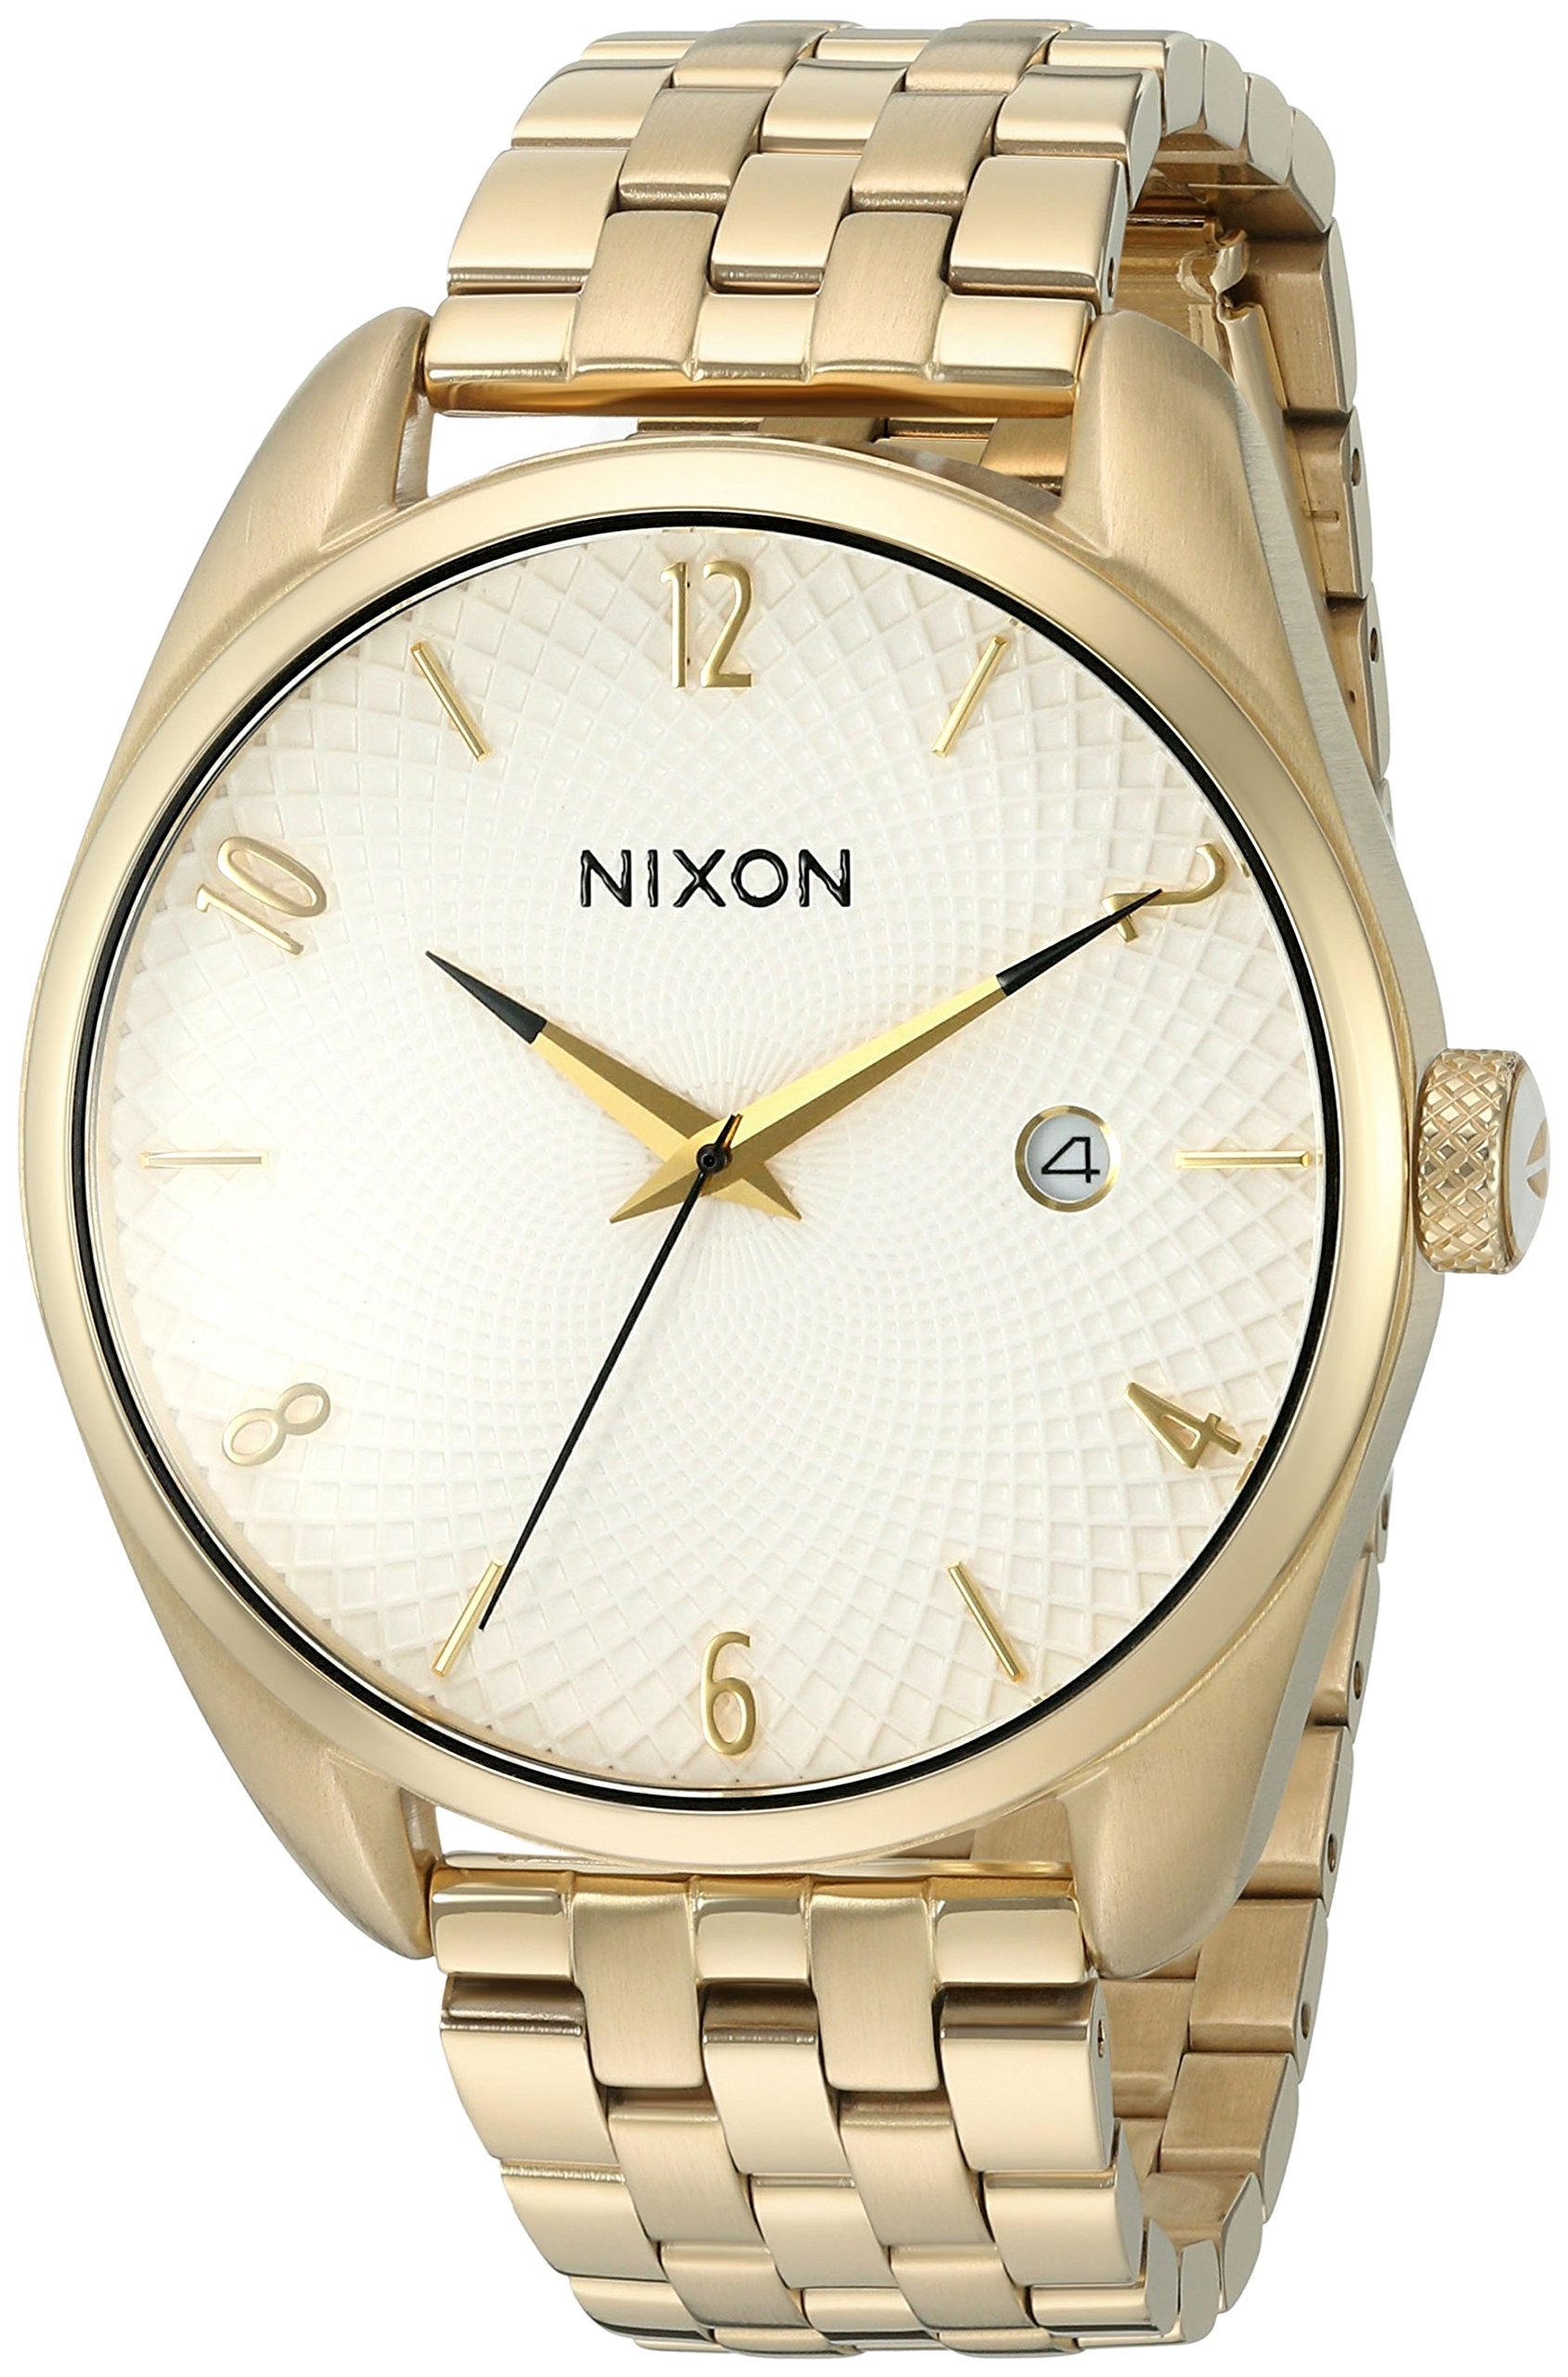 Nixon Women's 'Bullet, White' Quartz Stainless Steel Watch, Color:Gold-Toned (Model: A418-508-00)